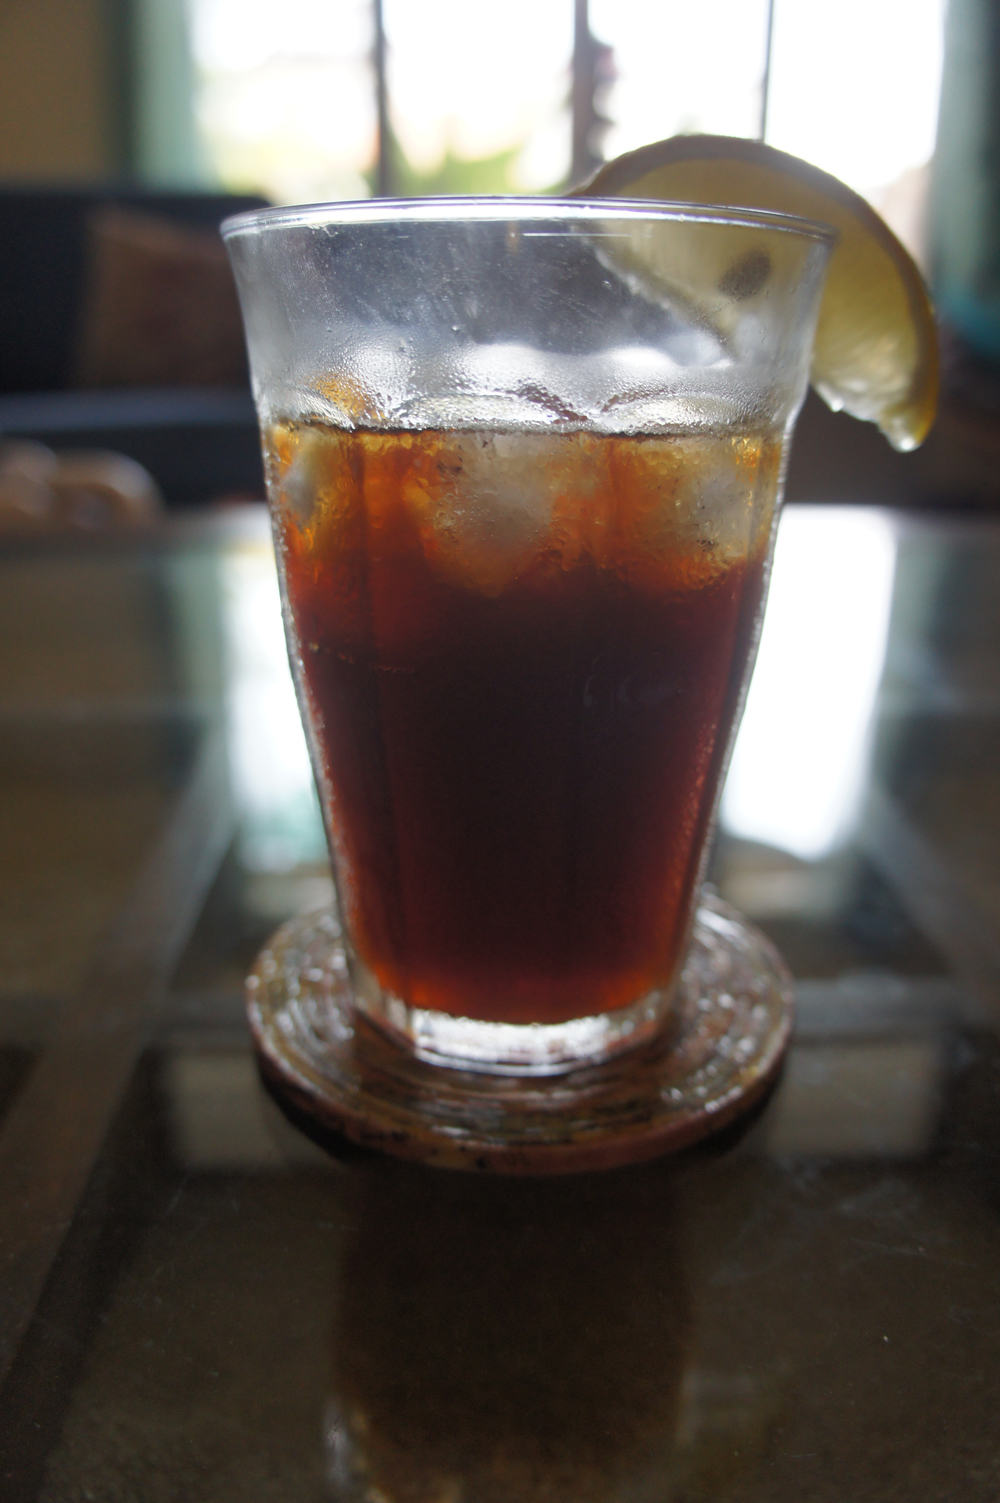 Our morning brew-- a cold brew concentrate with tonic water and a wedge of lemon!